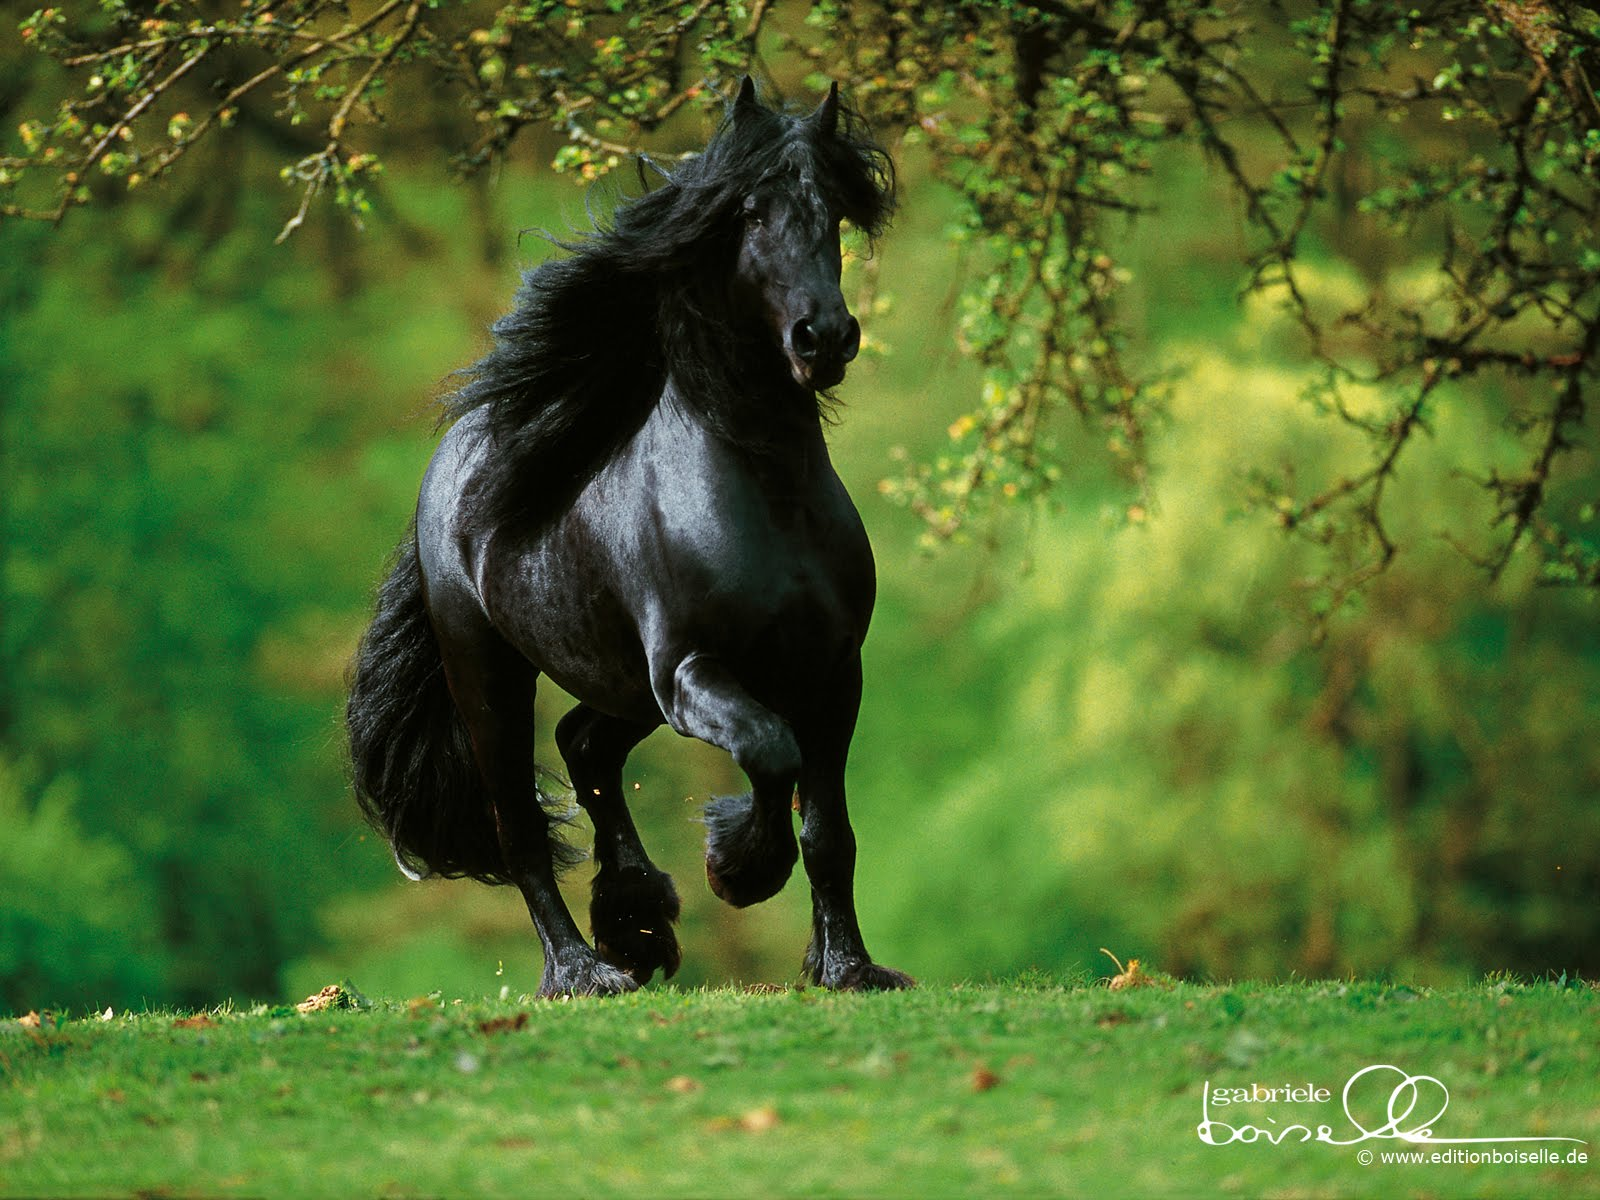 http://4.bp.blogspot.com/-91XVryUFOxA/TwHQnFYwrsI/AAAAAAAAUPg/8HhVYPPeSec/s1600/Beautiful-Black-horse-wallpapers.jpg